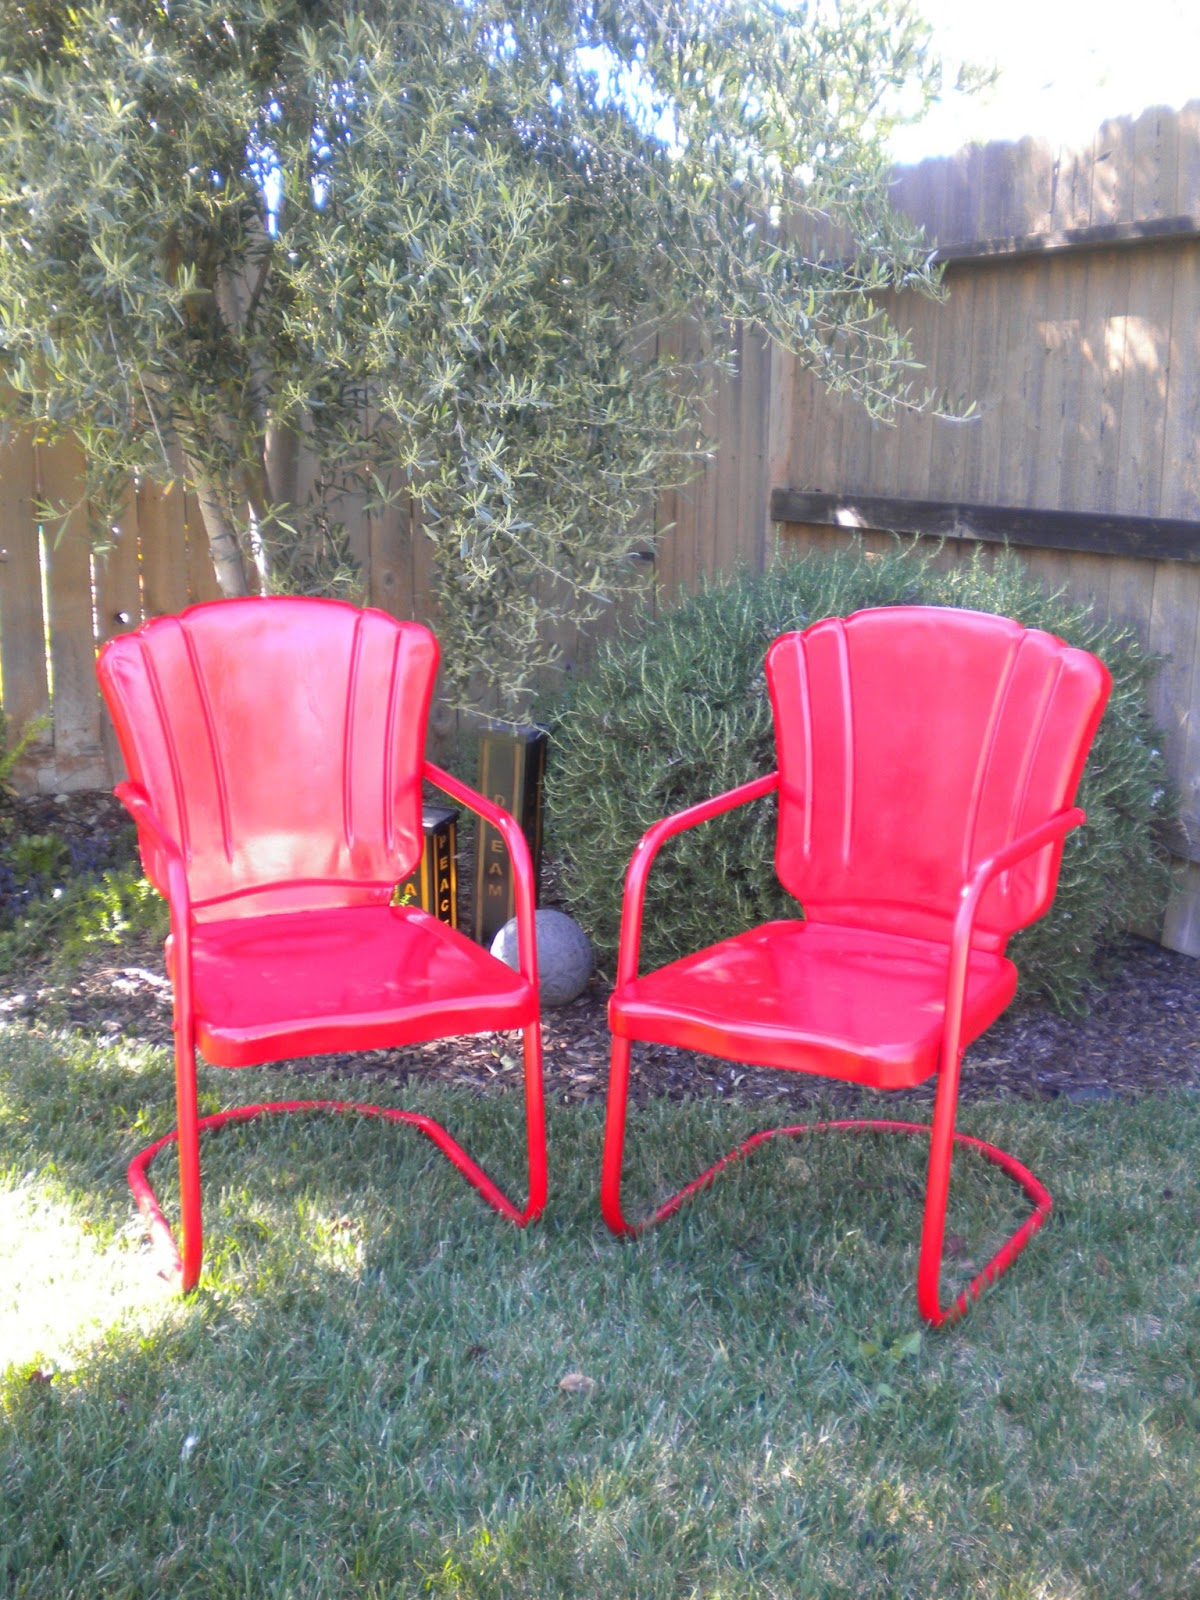 Vintage metal garden chairs welcome to metro retro antique metal lawn chairs ebay furniture Vintage metal garden furniture